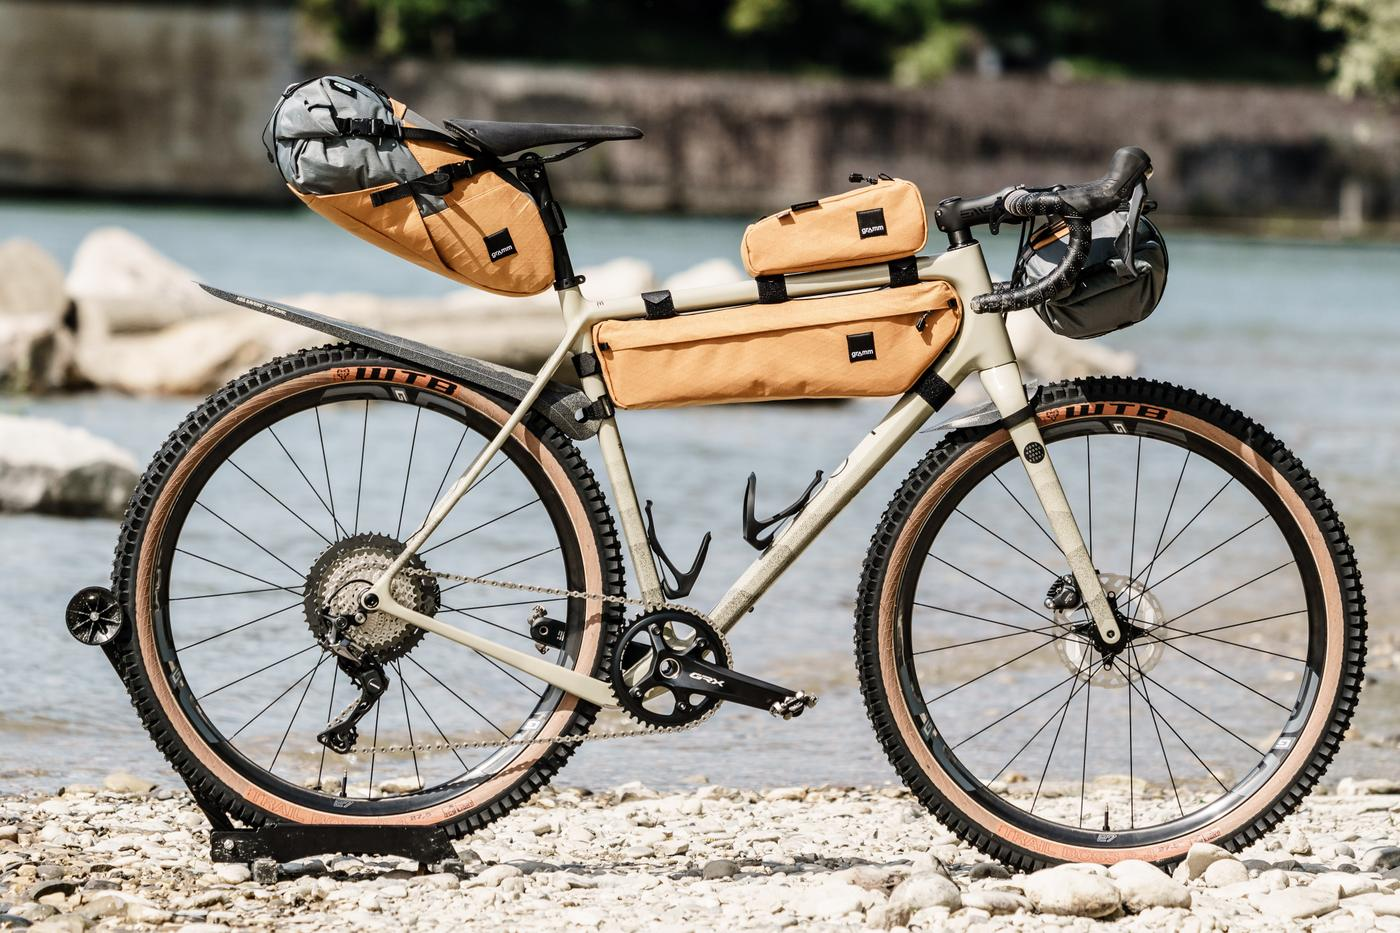 A Limited Edition Open Detour with GRAMM Bags, Ass Savers and Shimano GRX